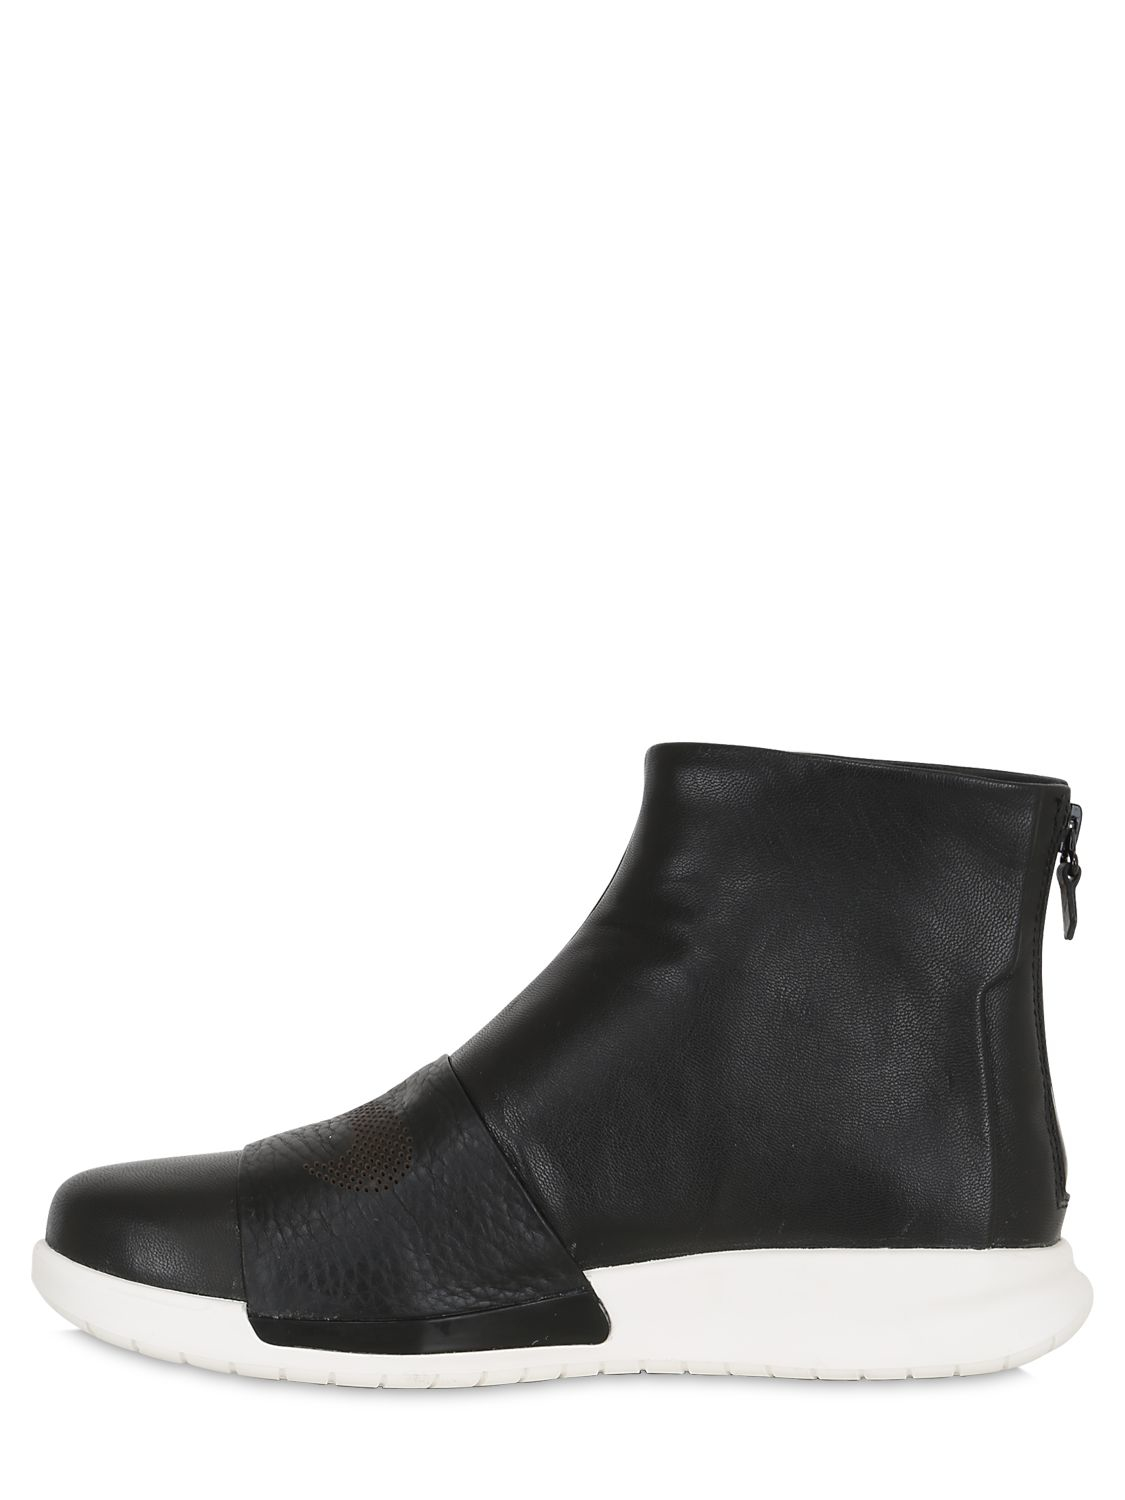 nike benassi leather sneaker boots in black for lyst